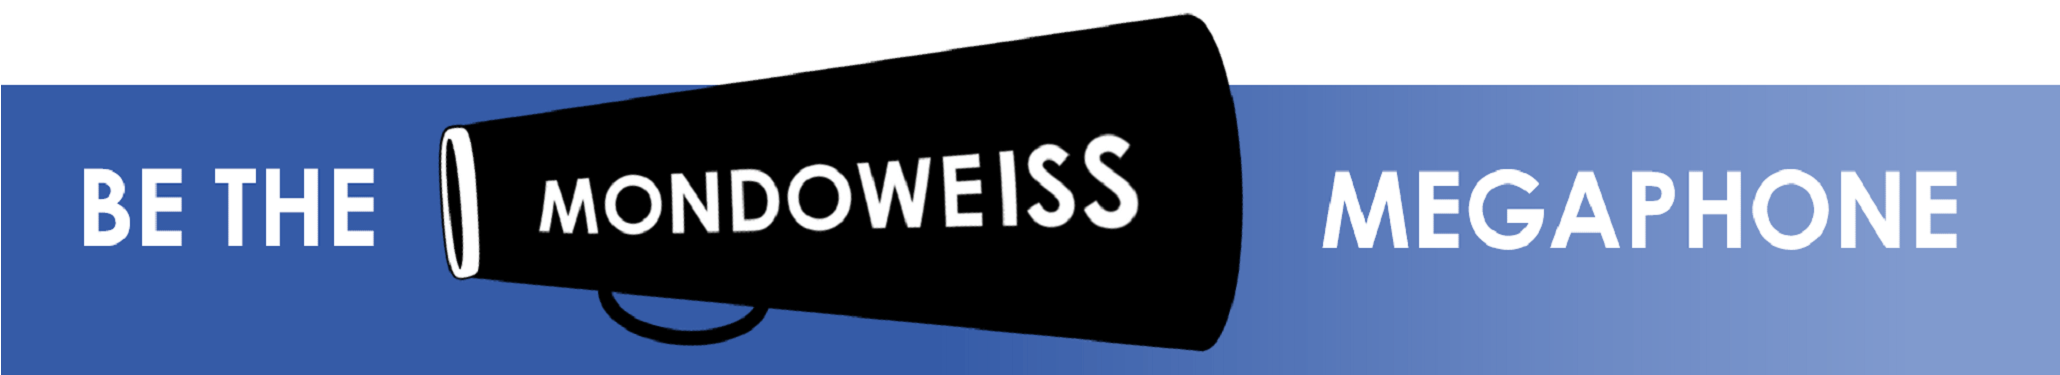 Please support Mondoweiss today with a tax-deductible donation.